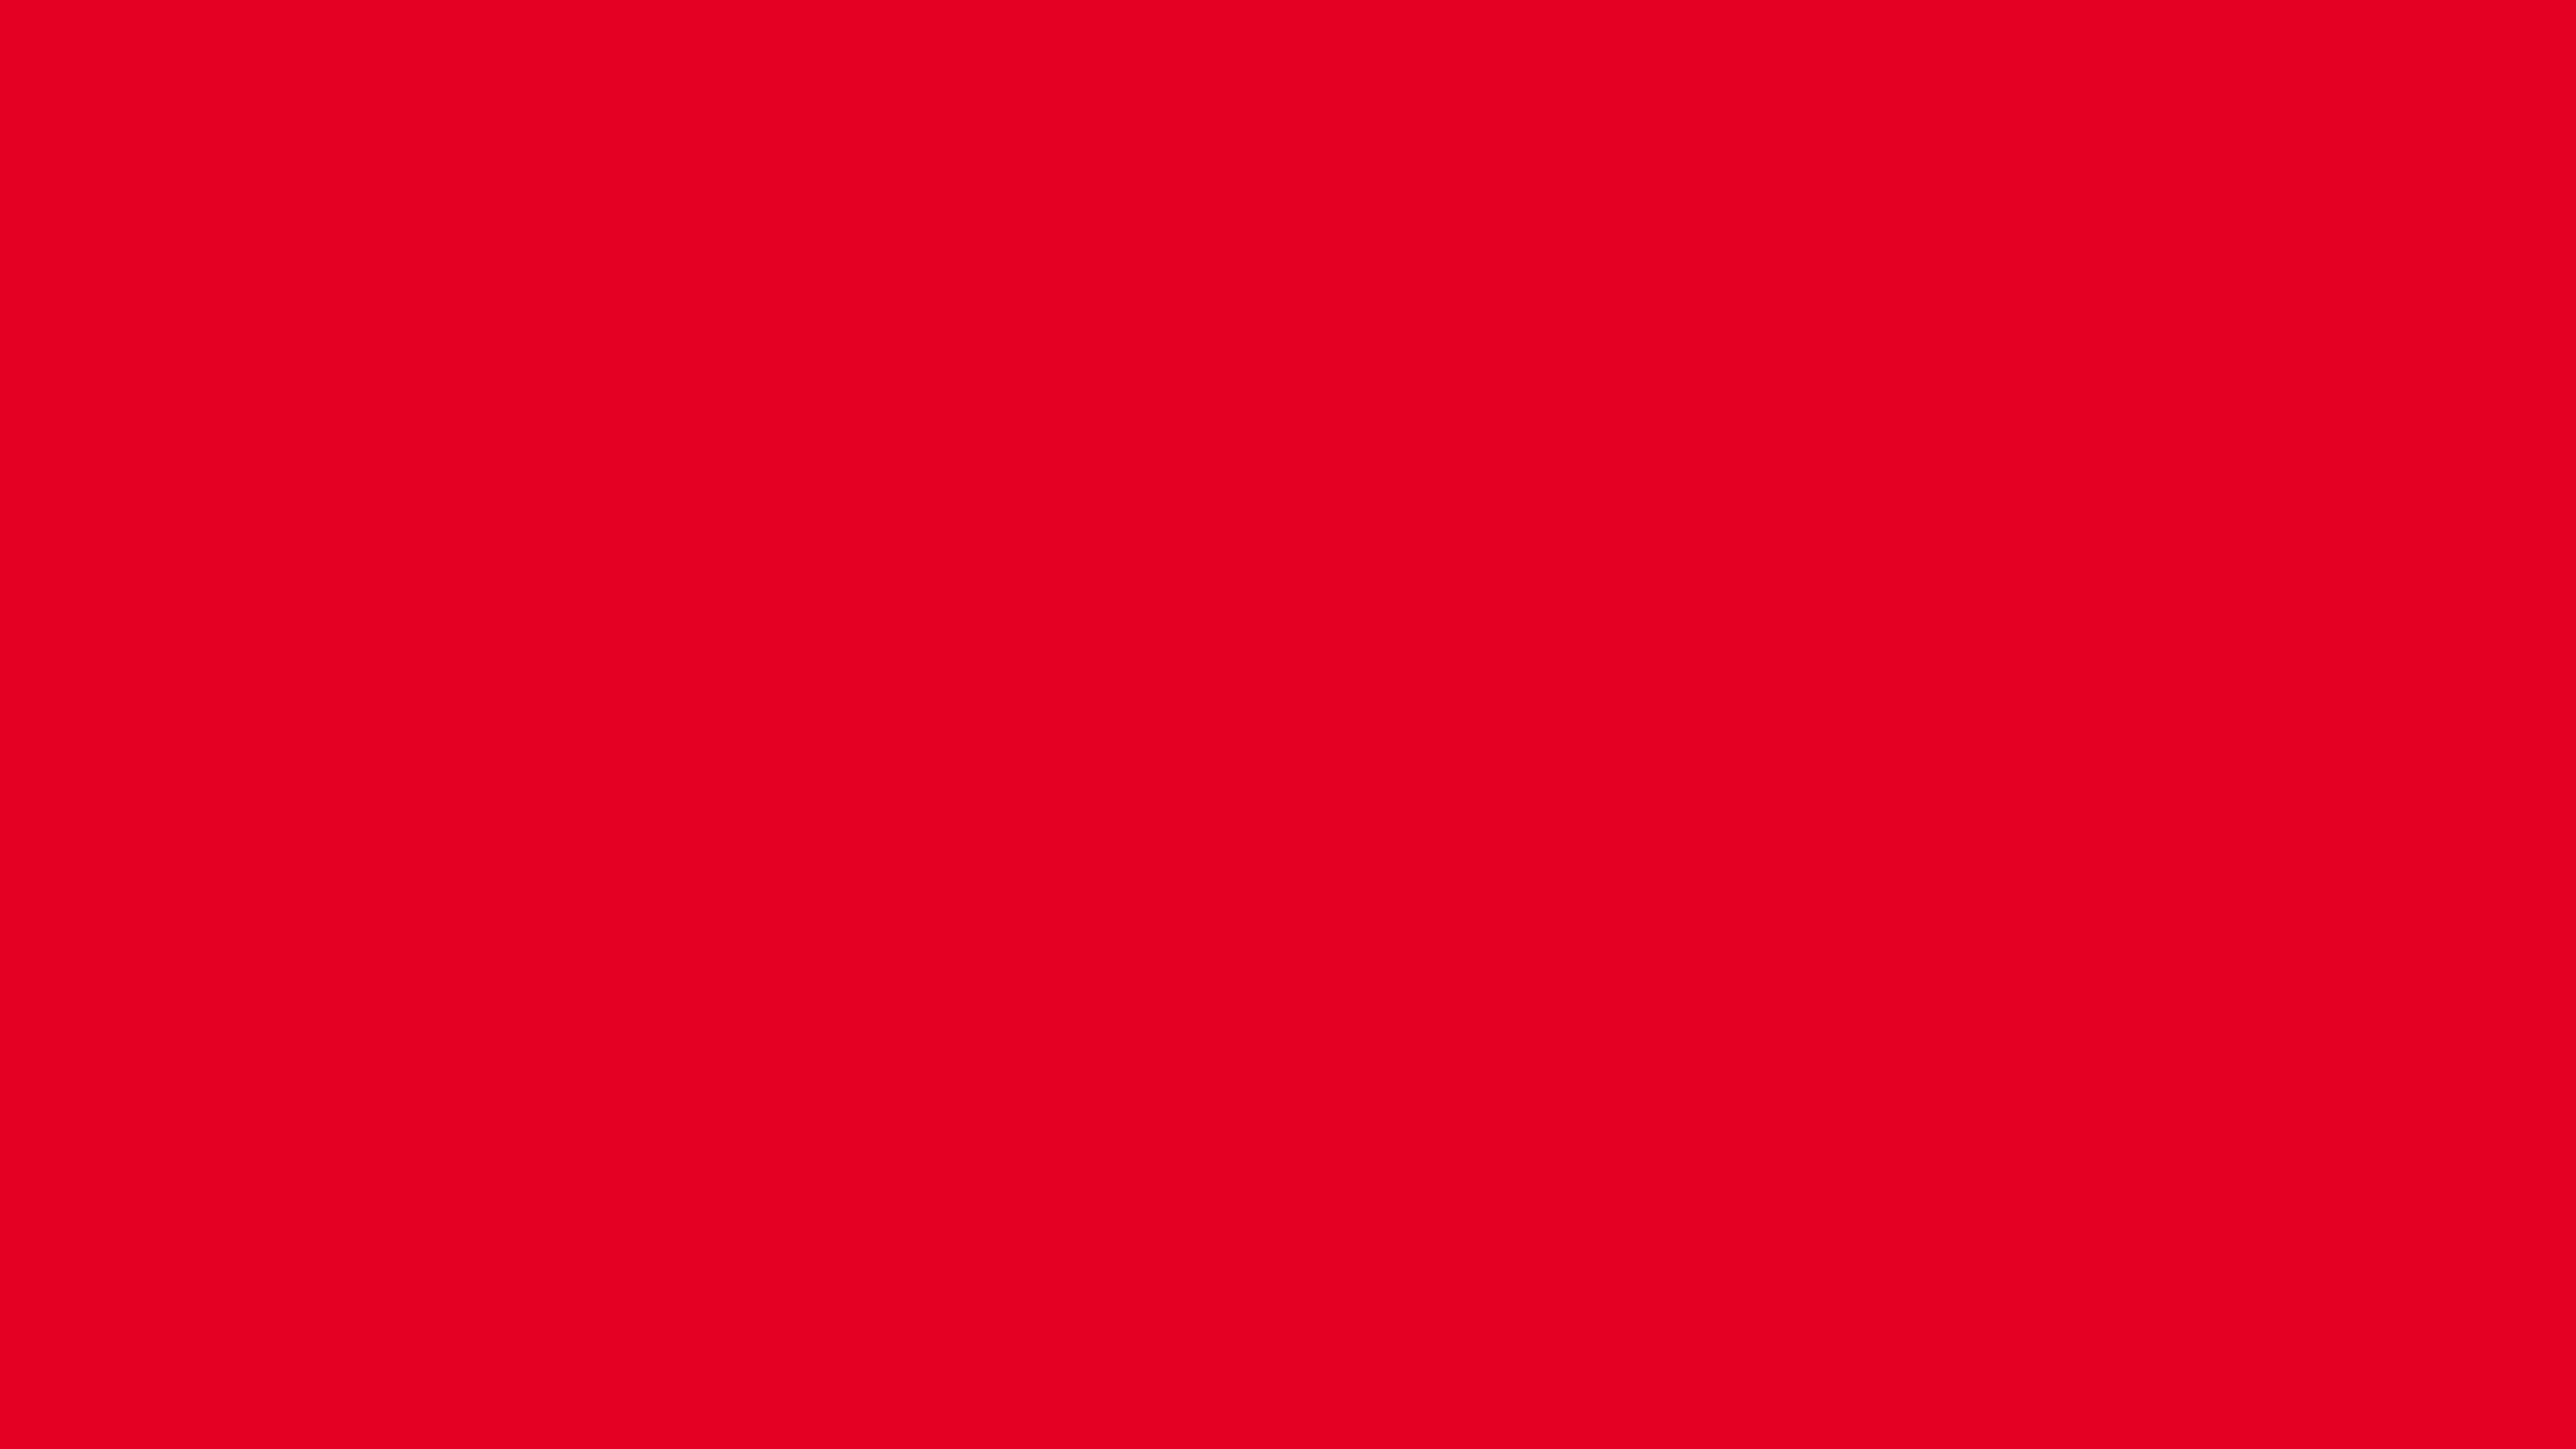 4096x2304 Cadmium Red Solid Color Background